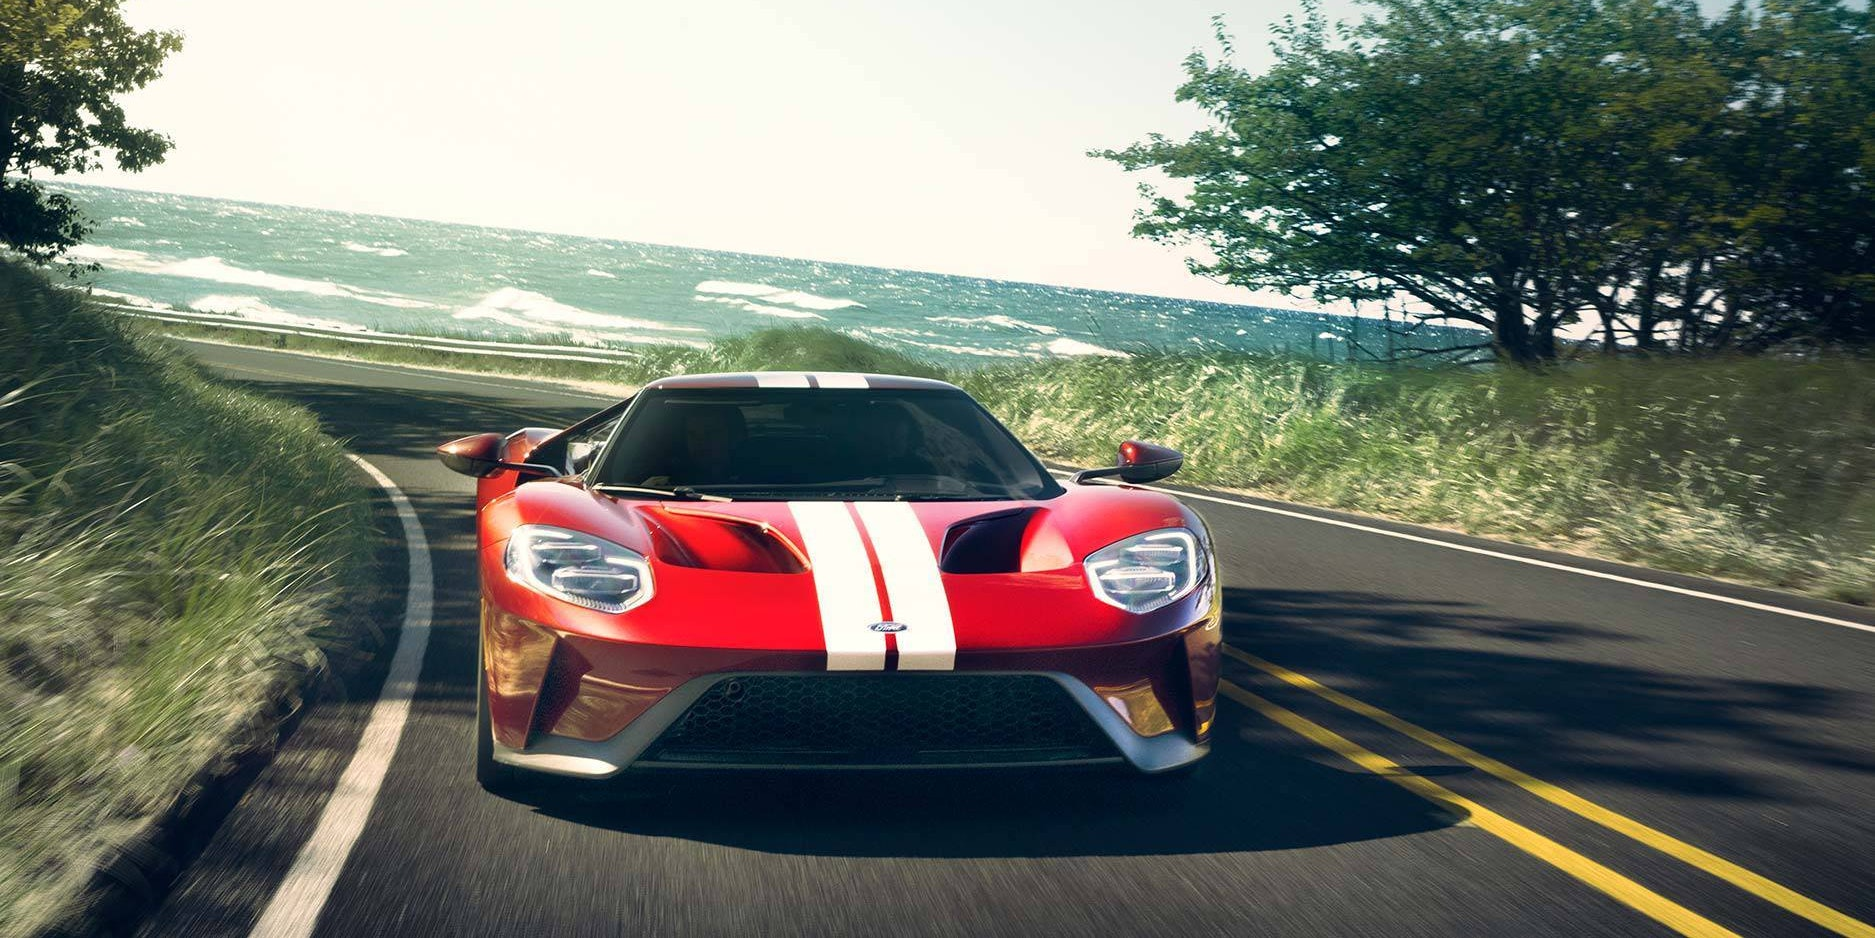 Aerodynamic Physics and a Monster Engine Make Ford GT the Fastest-Ever